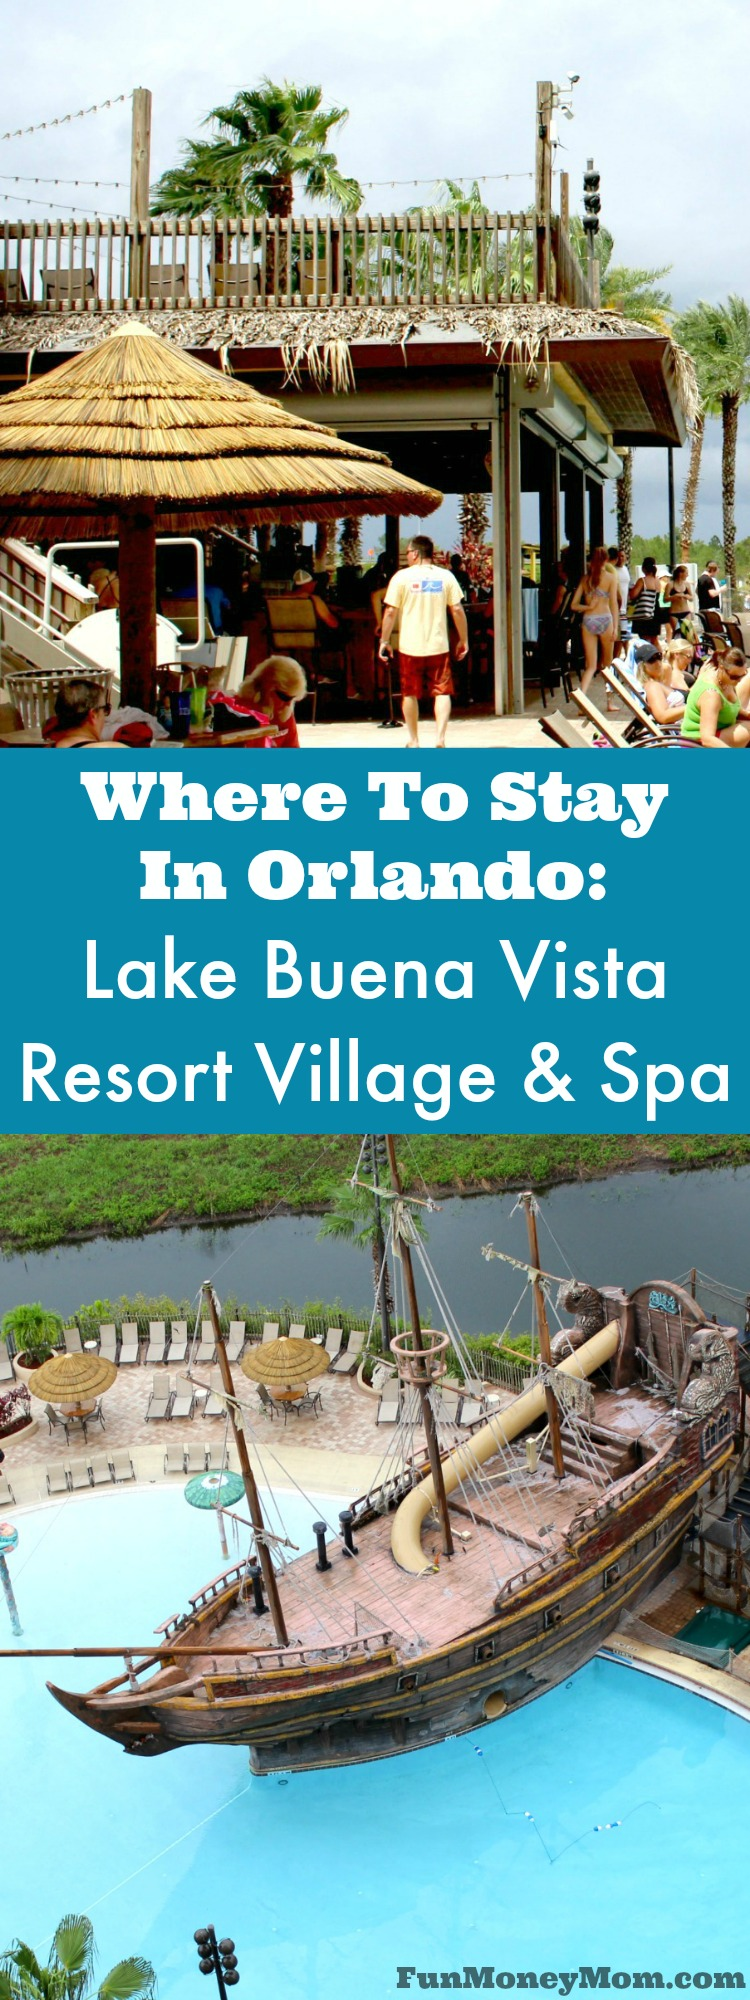 Lake Buena Vista Resort Village And Spa is someplace you should consider when you're trying to decide where to stay in Orlando. Whether you're traveling with or without the kids, find out what makes this Orlando hotel such a great place to spend your vacation.